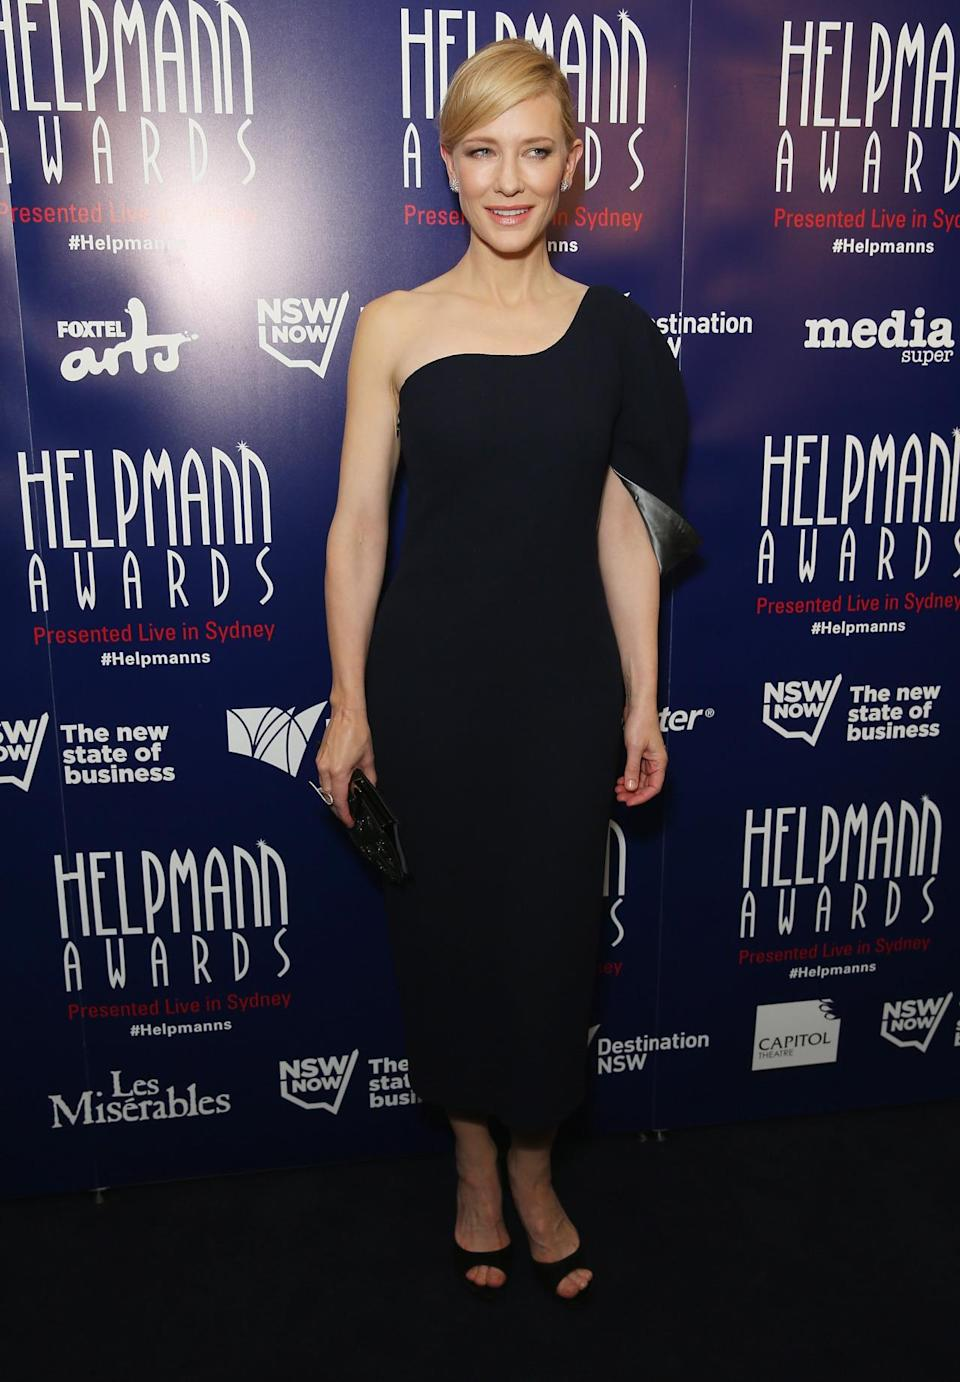 <p>The Academy Award-winning actress arrived to the 2015 Helpmann Awards in Sydney, Australia wearing a sophisticated gown from the Australian fashion brand.<br><br></p>